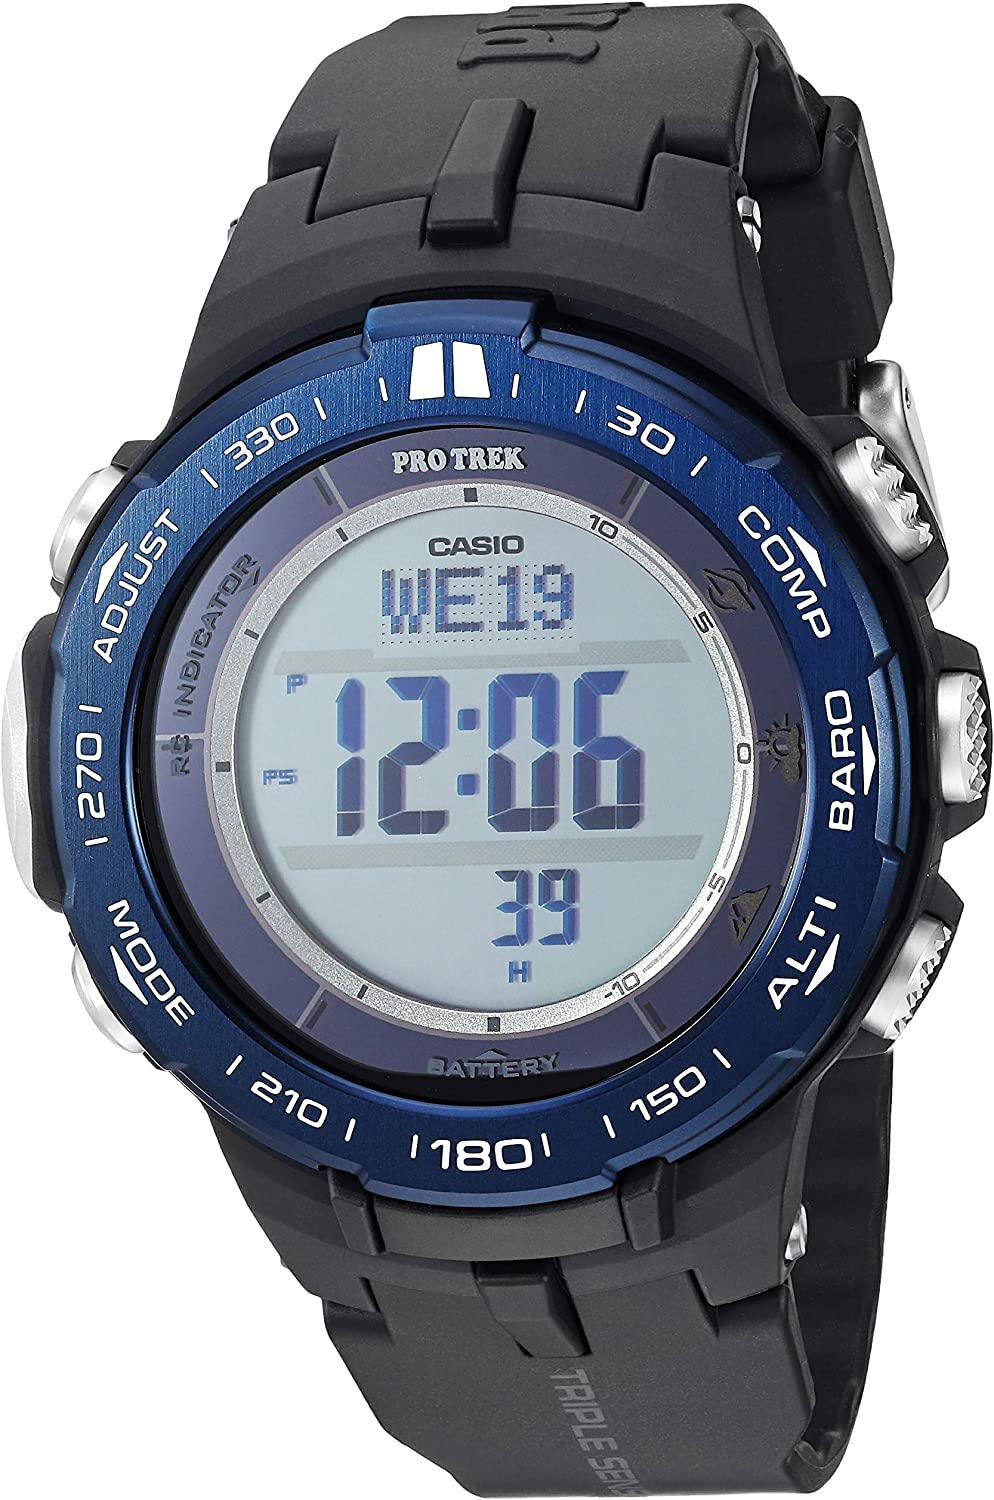 Casio Men s Pro Trek Stainless Steel Quartz Watch with Resin Strap, Black, 23 Model PRW-3100YB-1CR